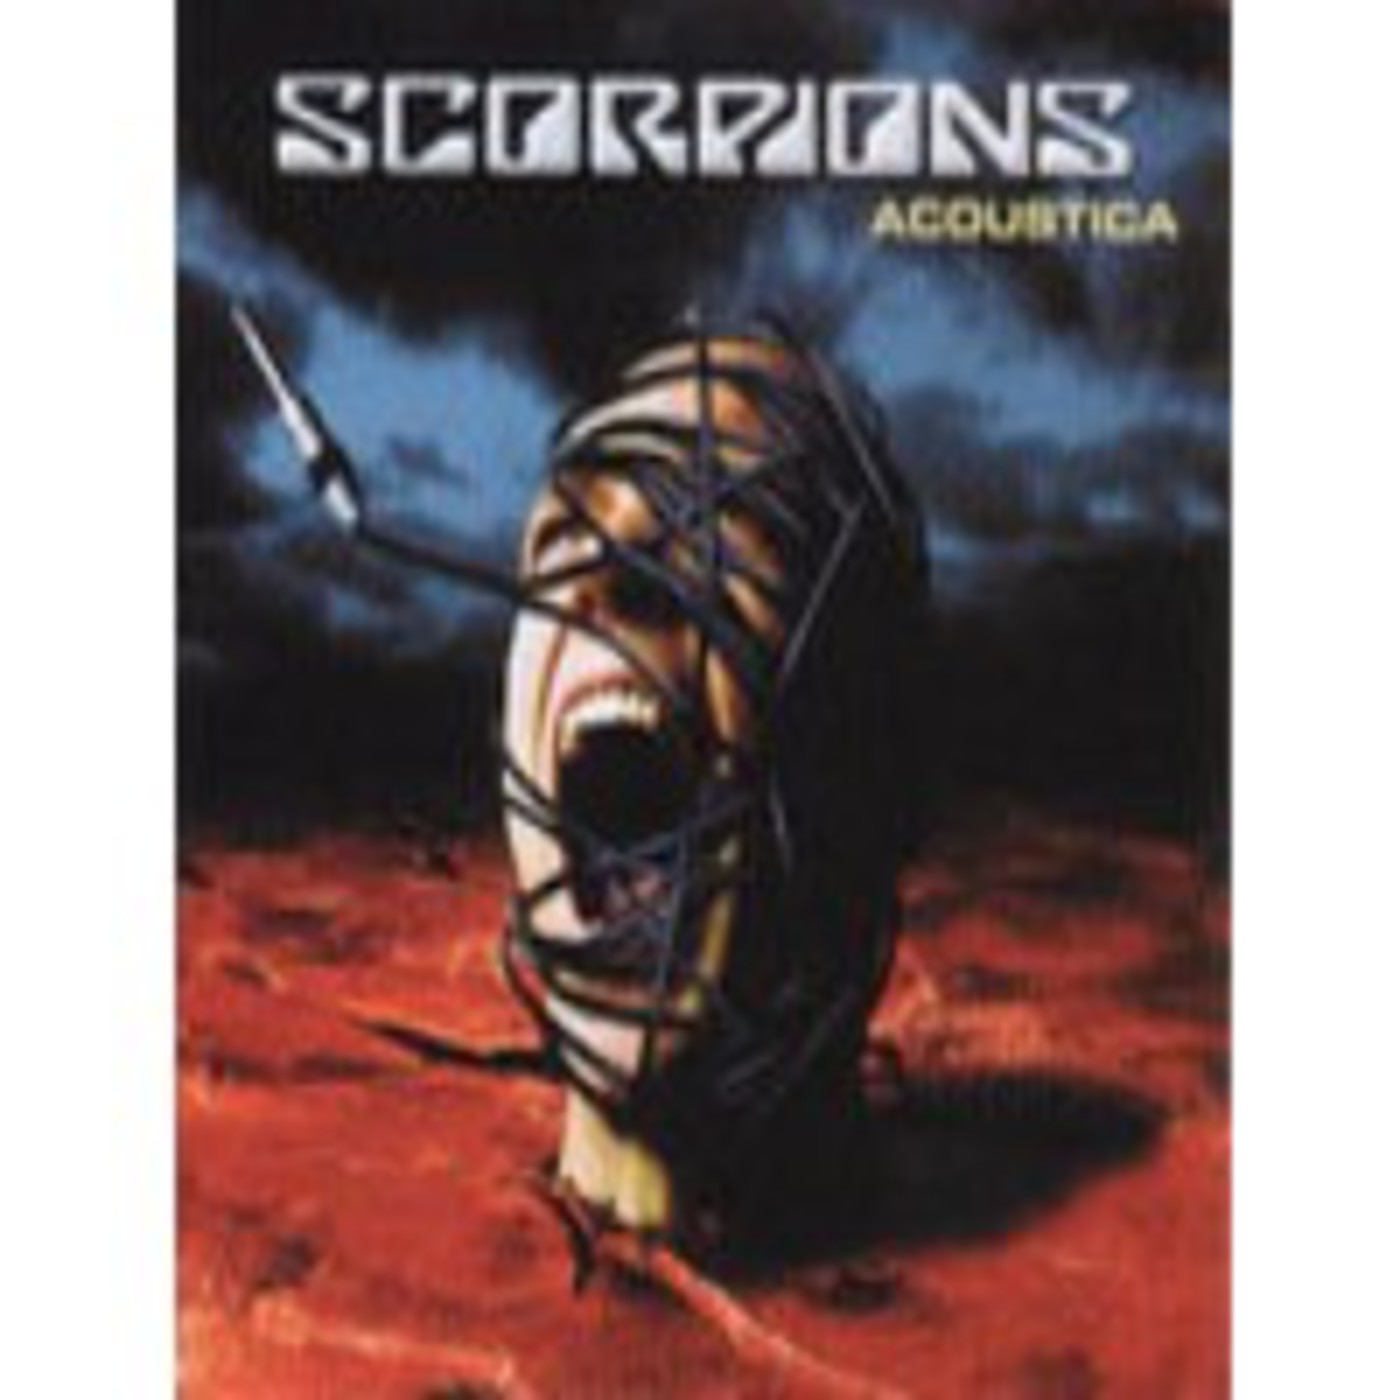 In CONCERT - Scorpions Live in portugal 2001